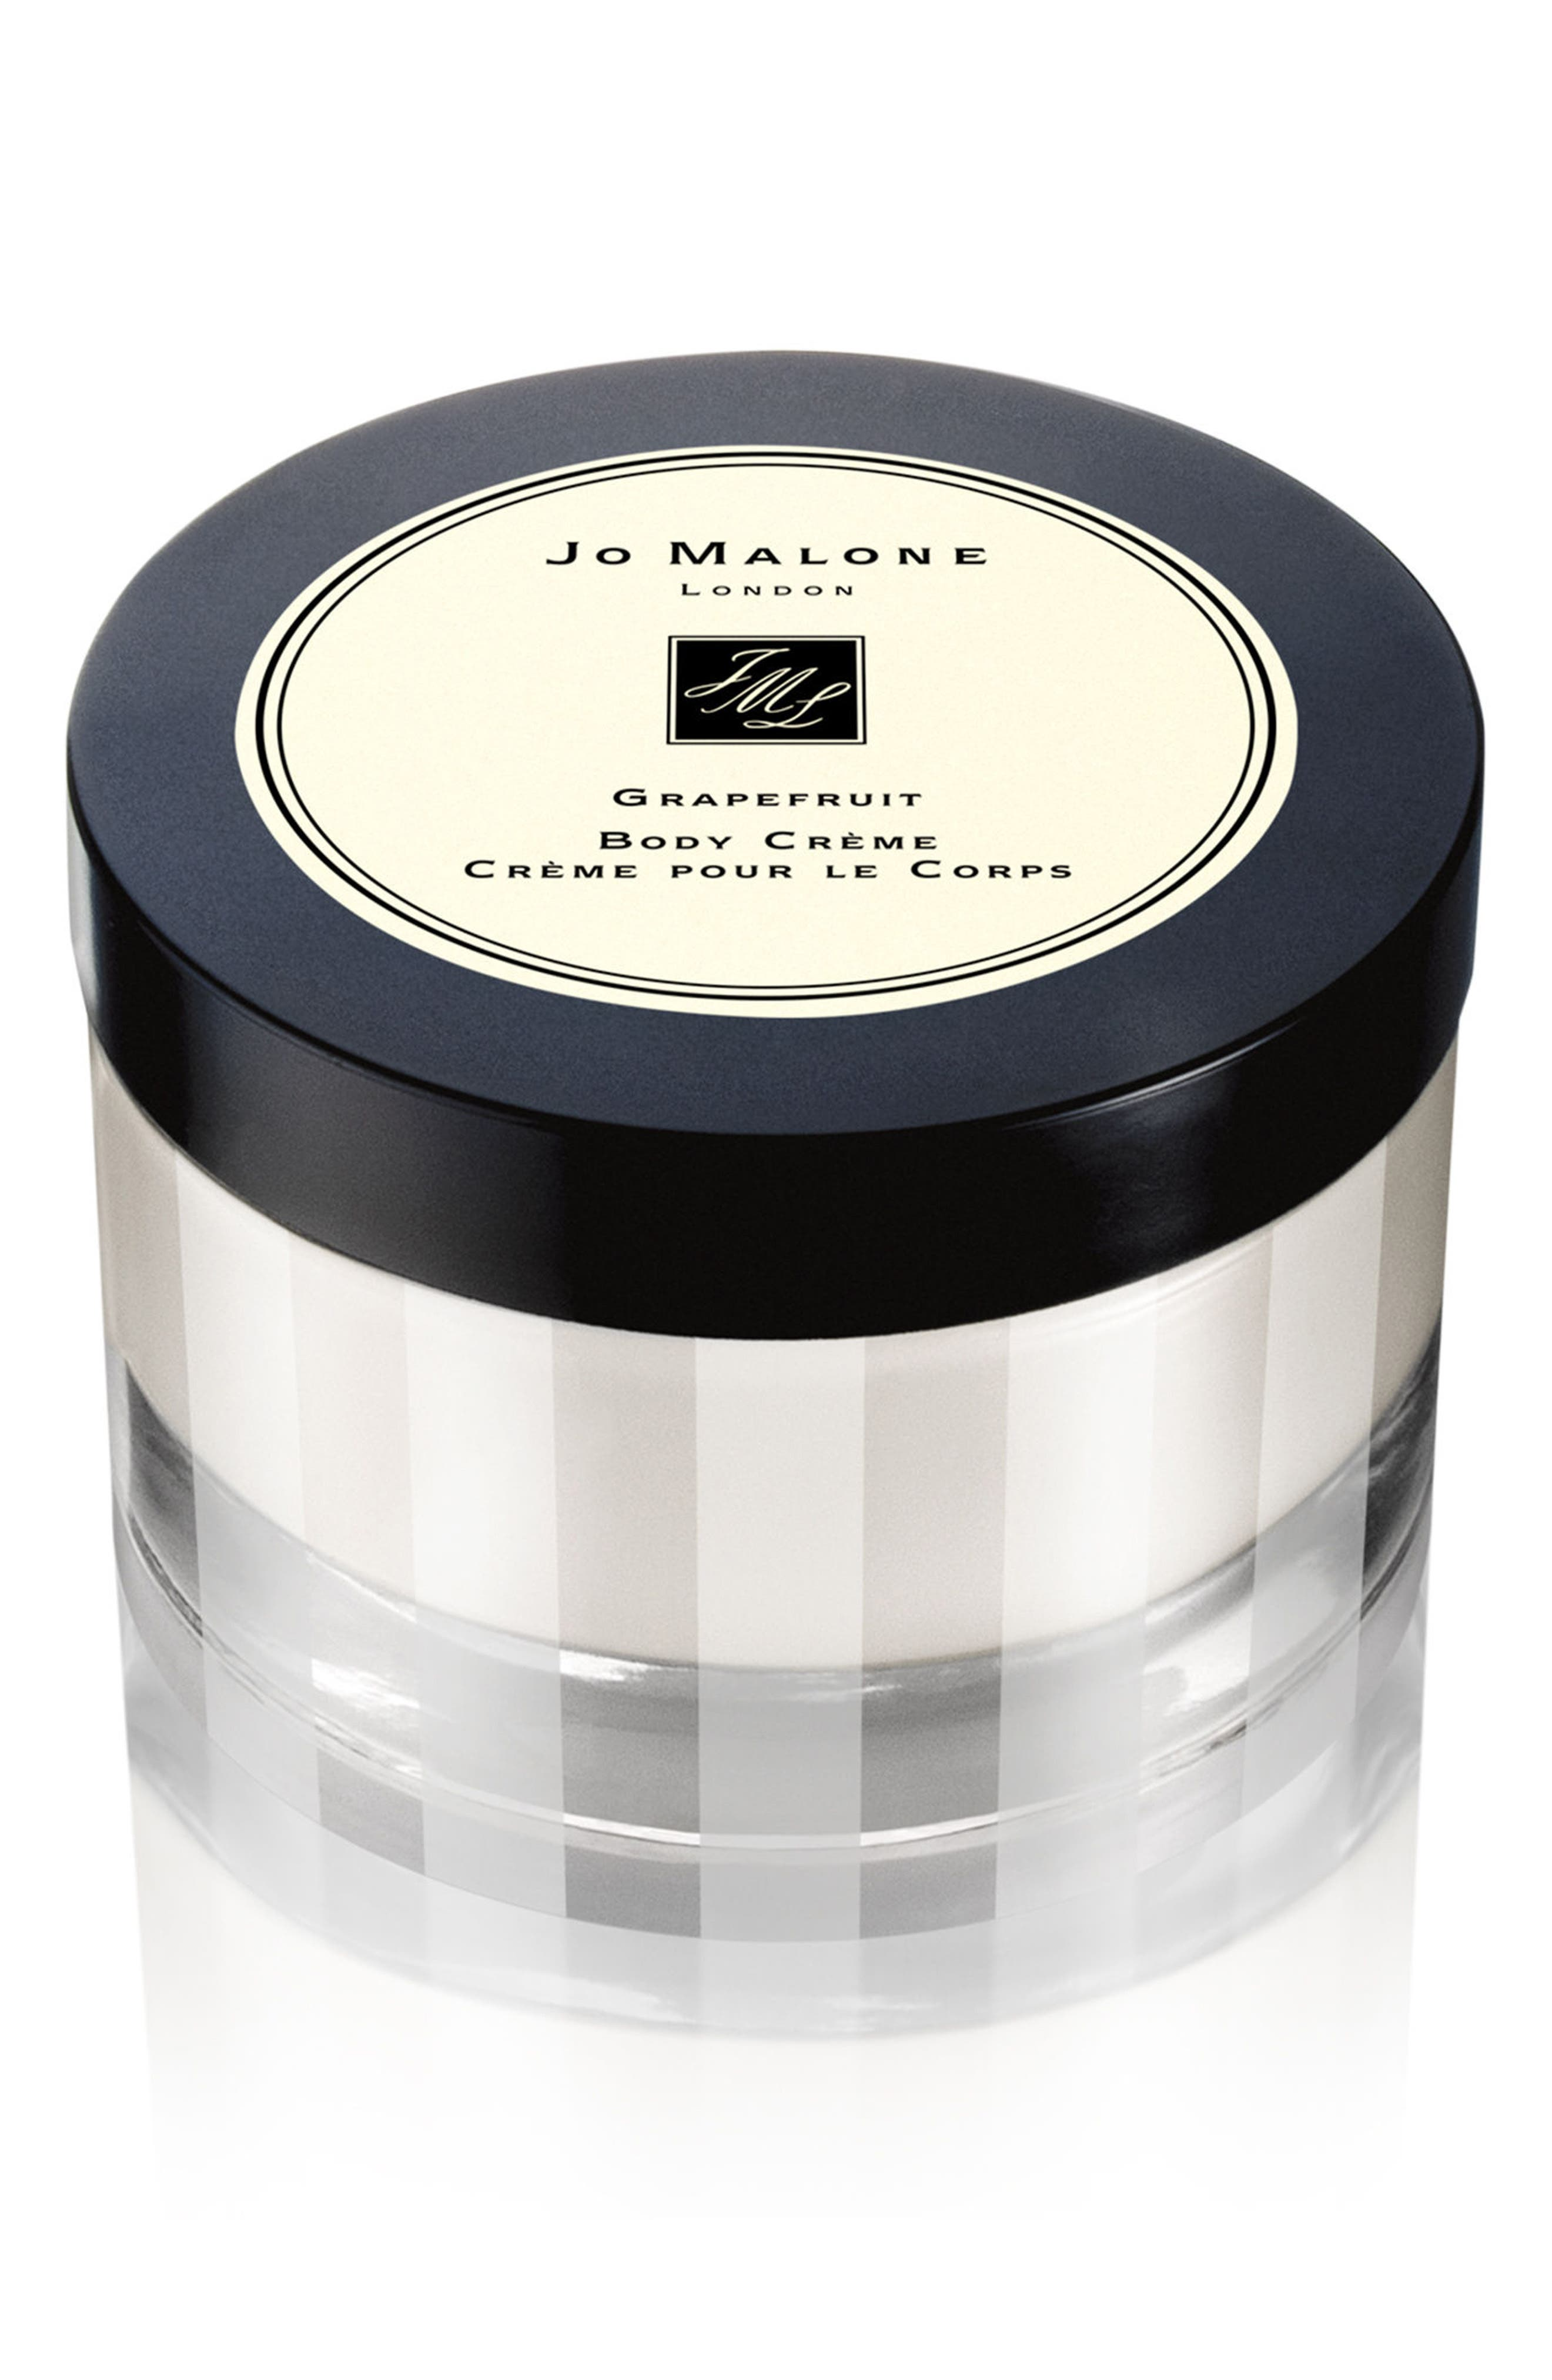 Alternate Image 1 Selected - Jo Malone London™ Grapefruit Body Crème